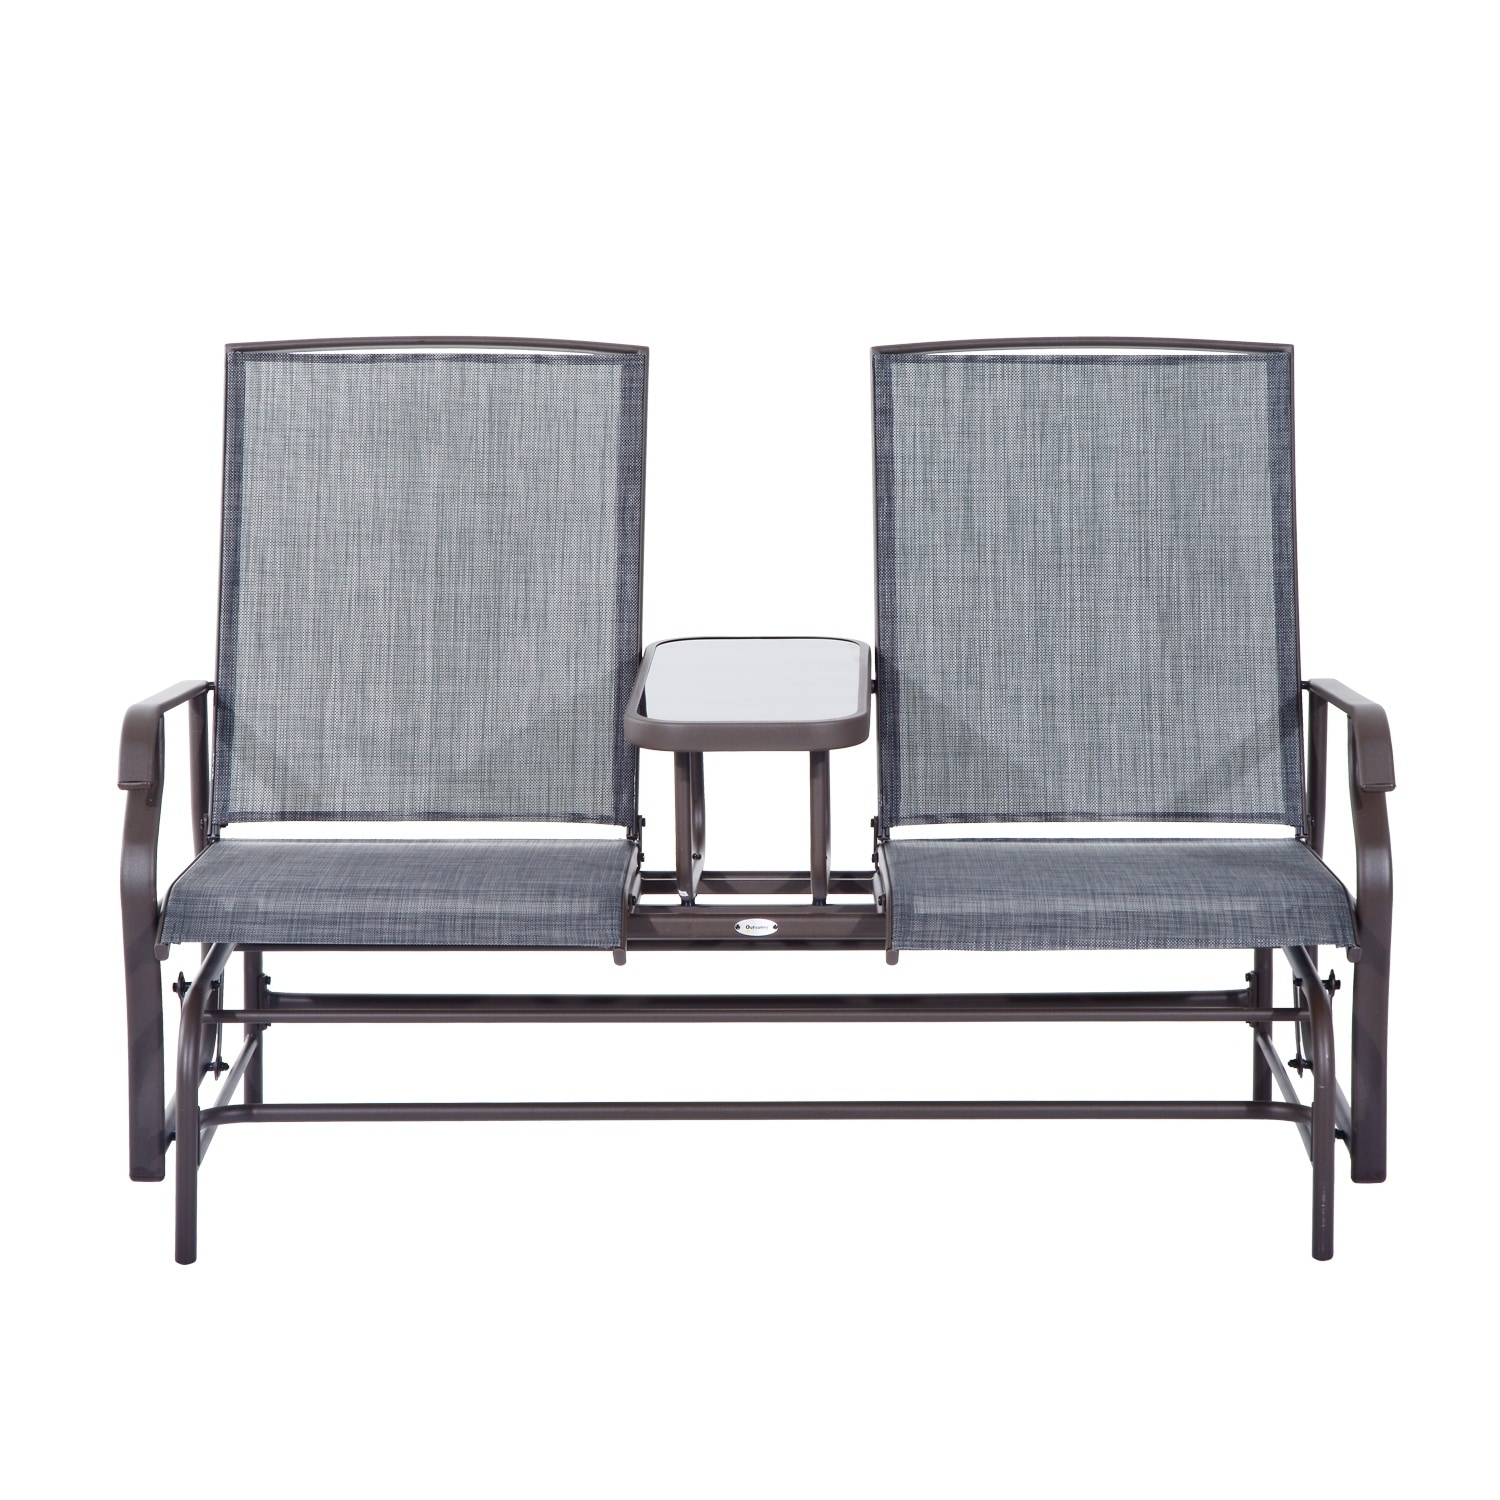 Enjoyable Outsunny Two Person Outdoor Mesh Fabric Patio Double Glider Chair With Center Table Short Links Chair Design For Home Short Linksinfo